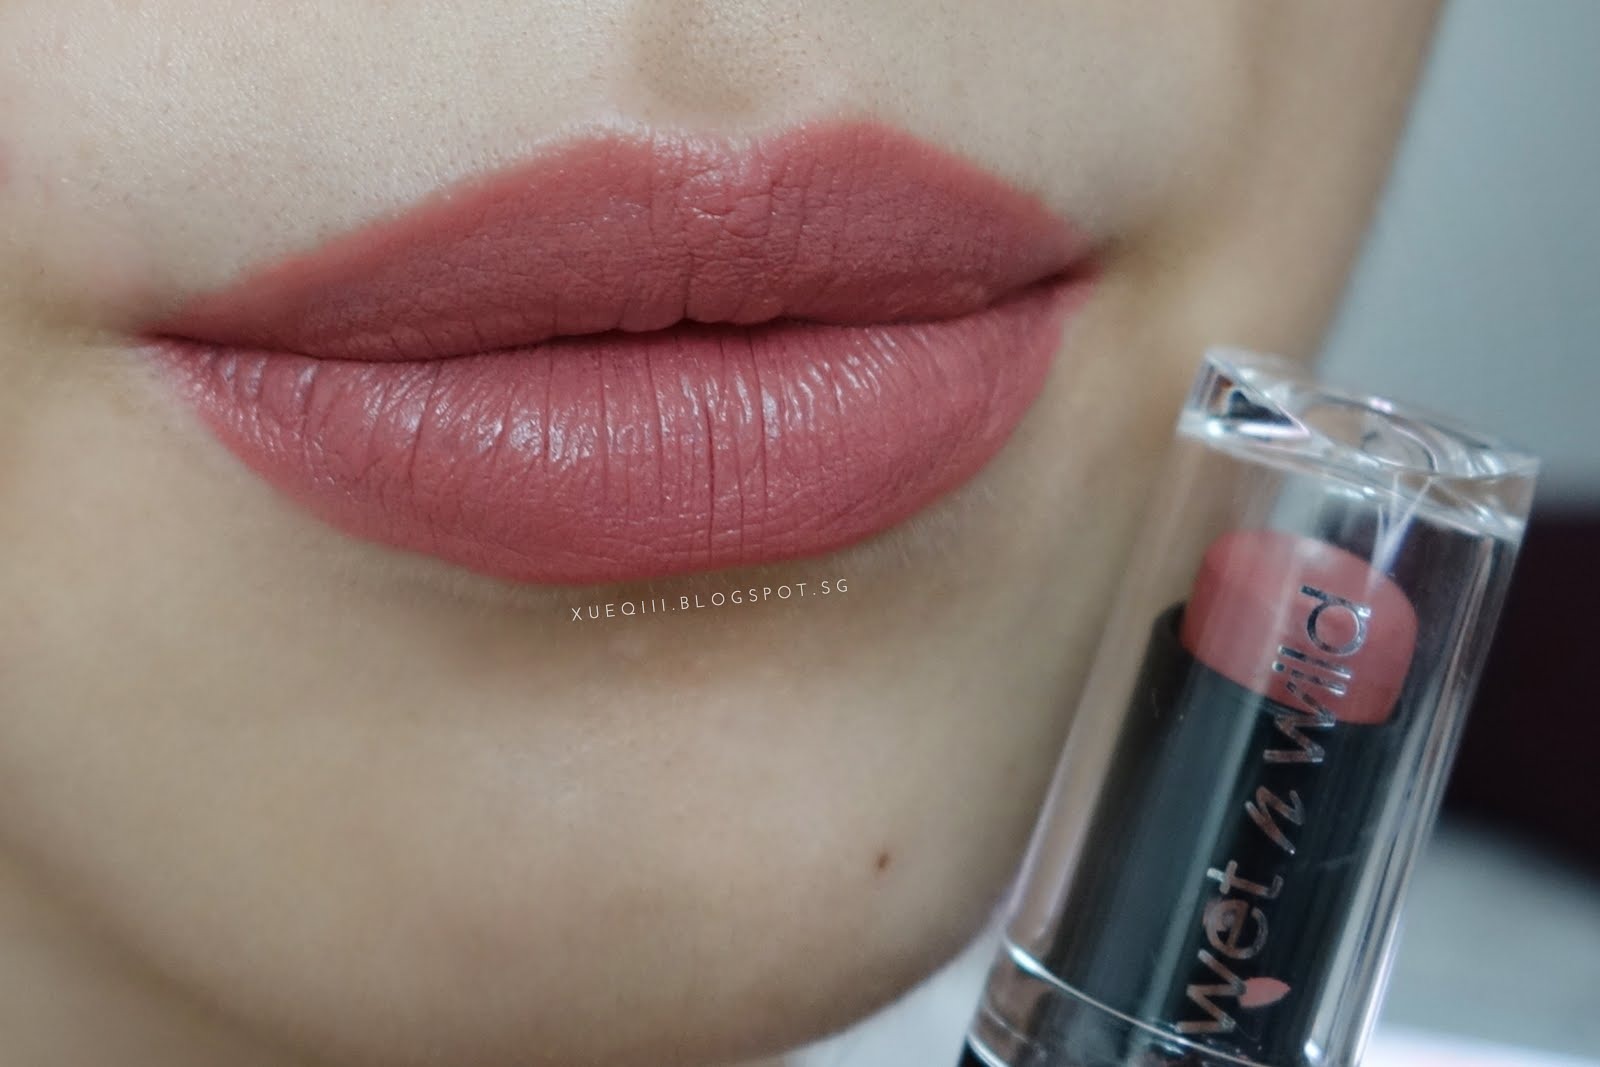 Wet n Wild MegaLast Lip Color | Review and Lip Swatches ... | 1600 x 1067 jpeg 95kB